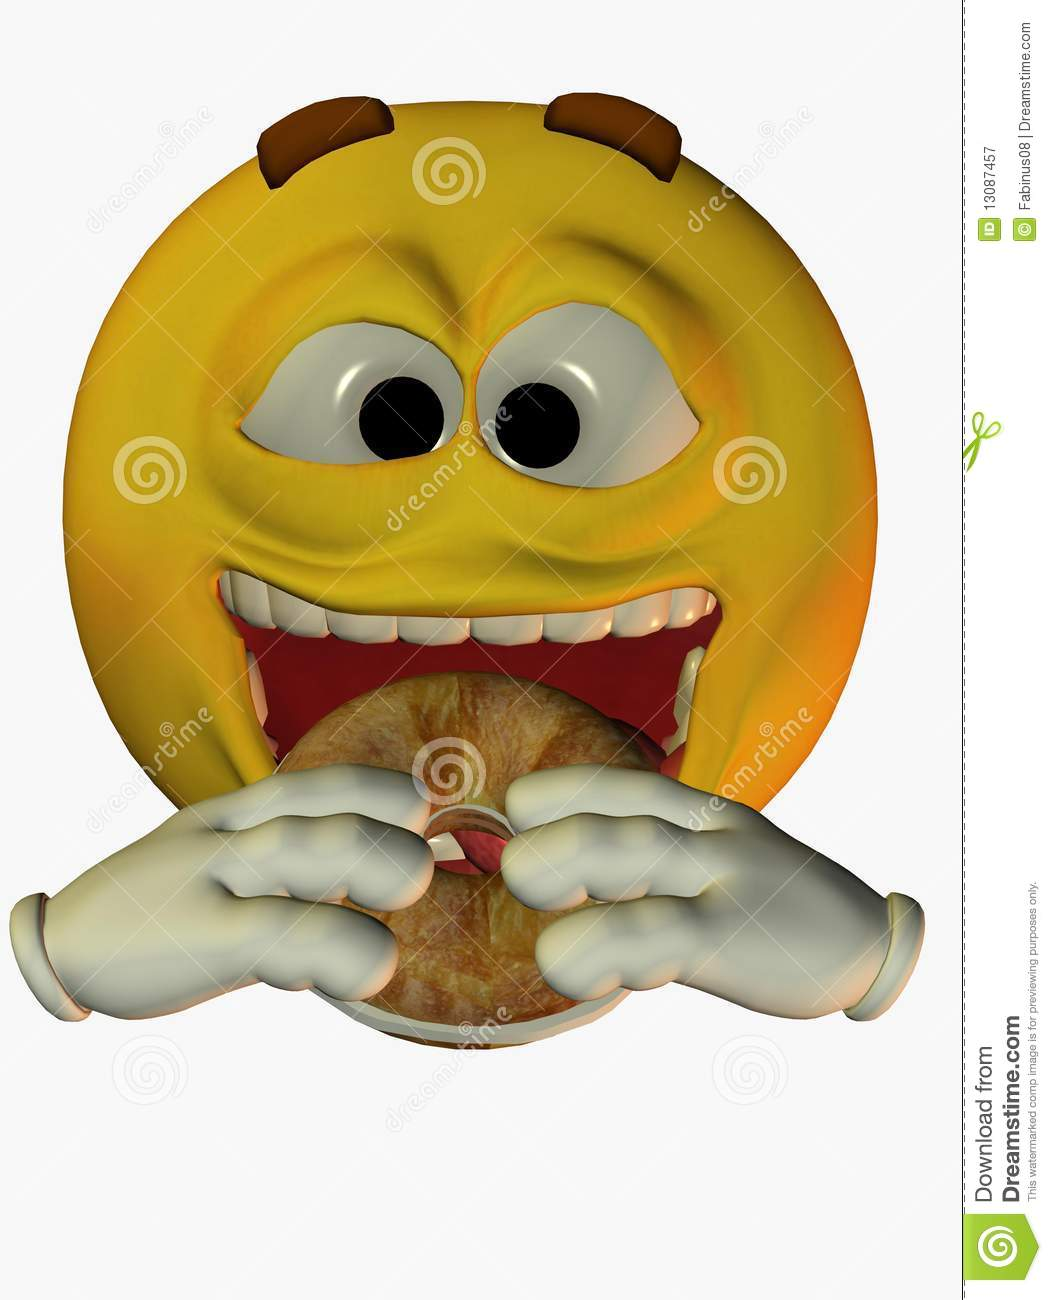 Stock Photo: Smiley face eating bagel. Image: